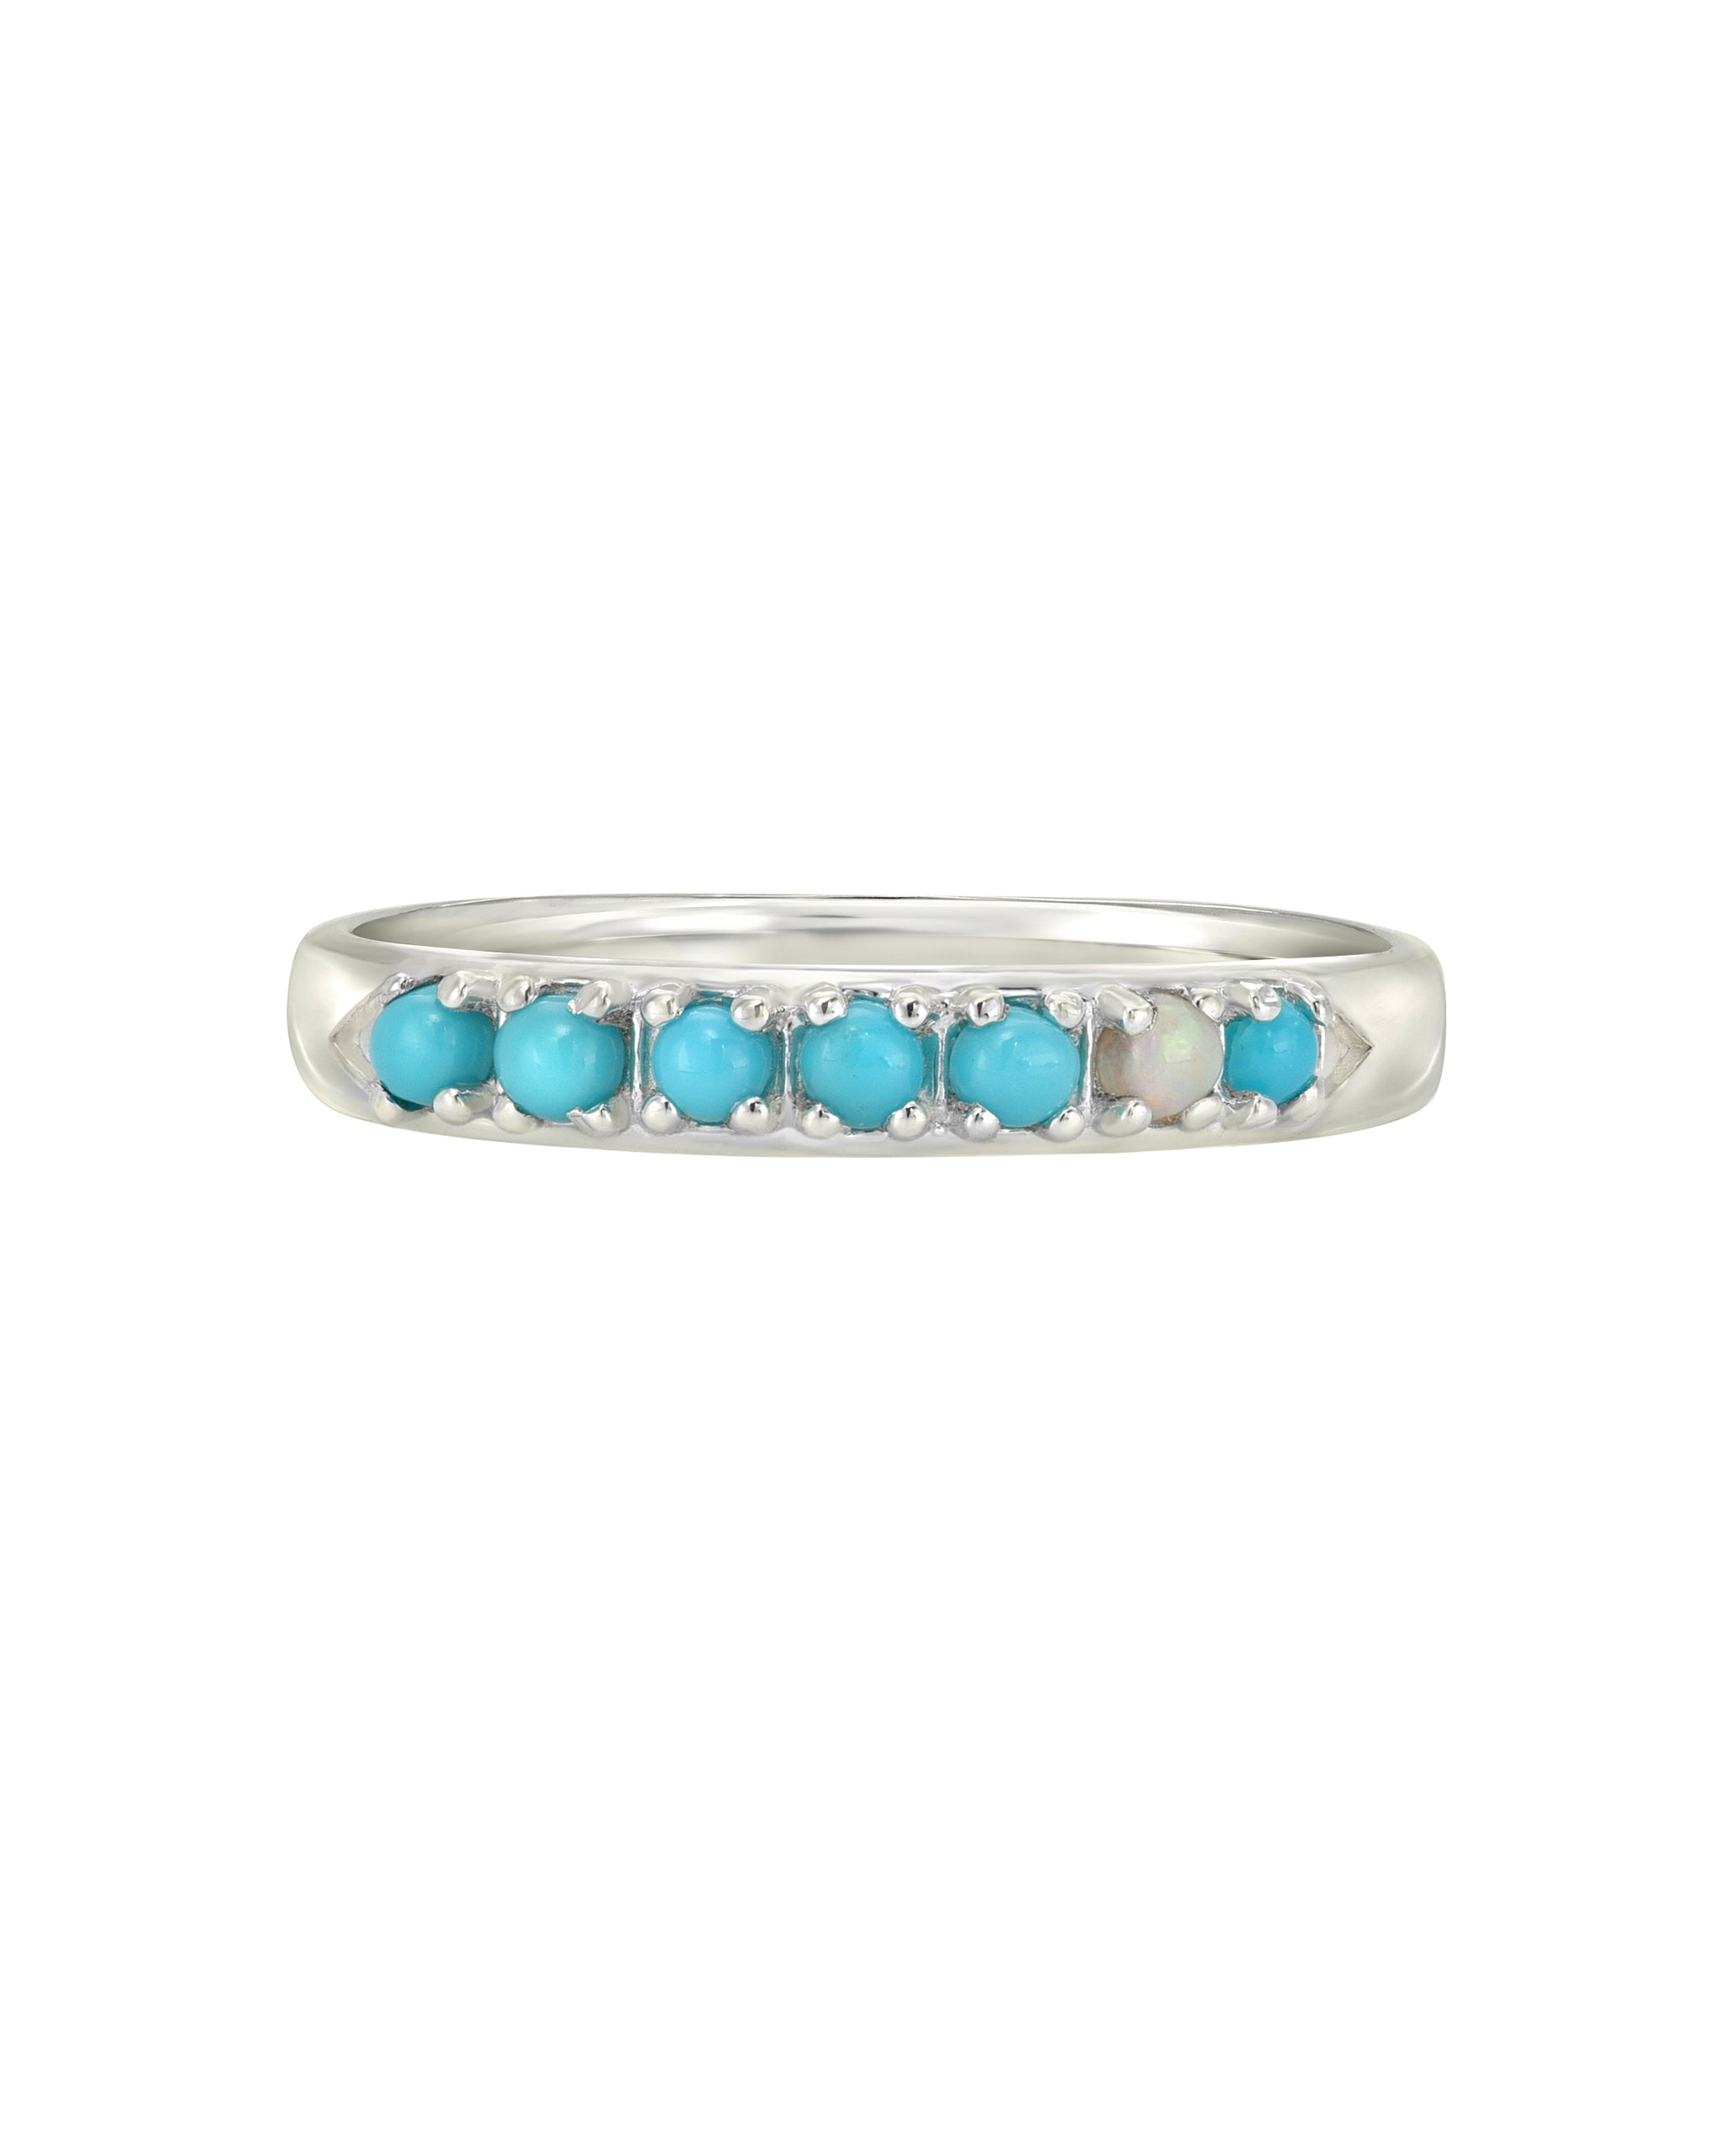 Wylde Ring, Turquoise and Opal Sterling Silver Chevron Ring, Handmade by Turquoise and Tobacco in Los Angeles California